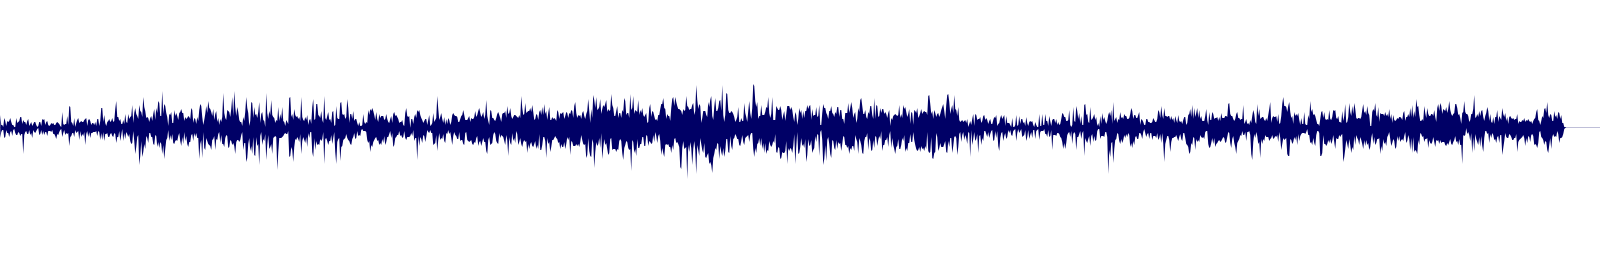 waveform of track #103331